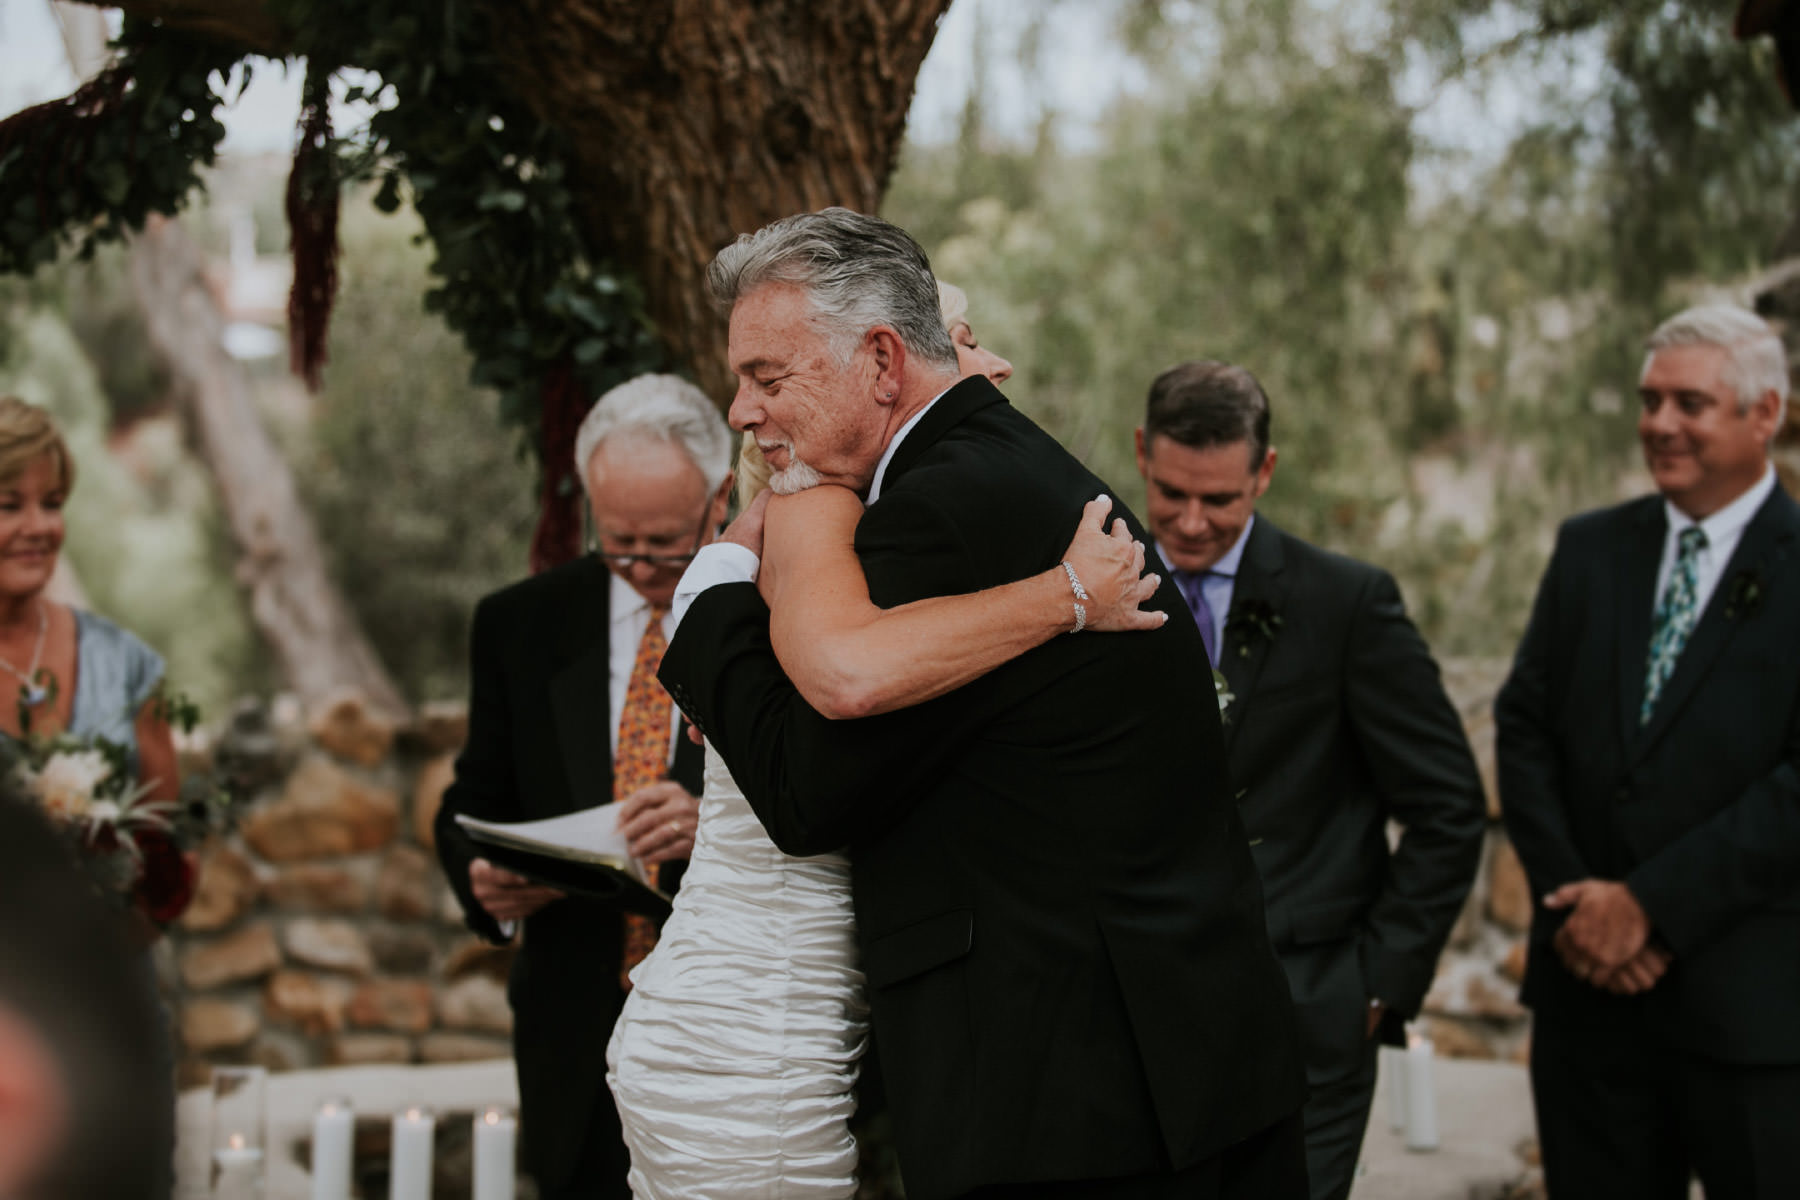 Bride and brother hugging during ceremony